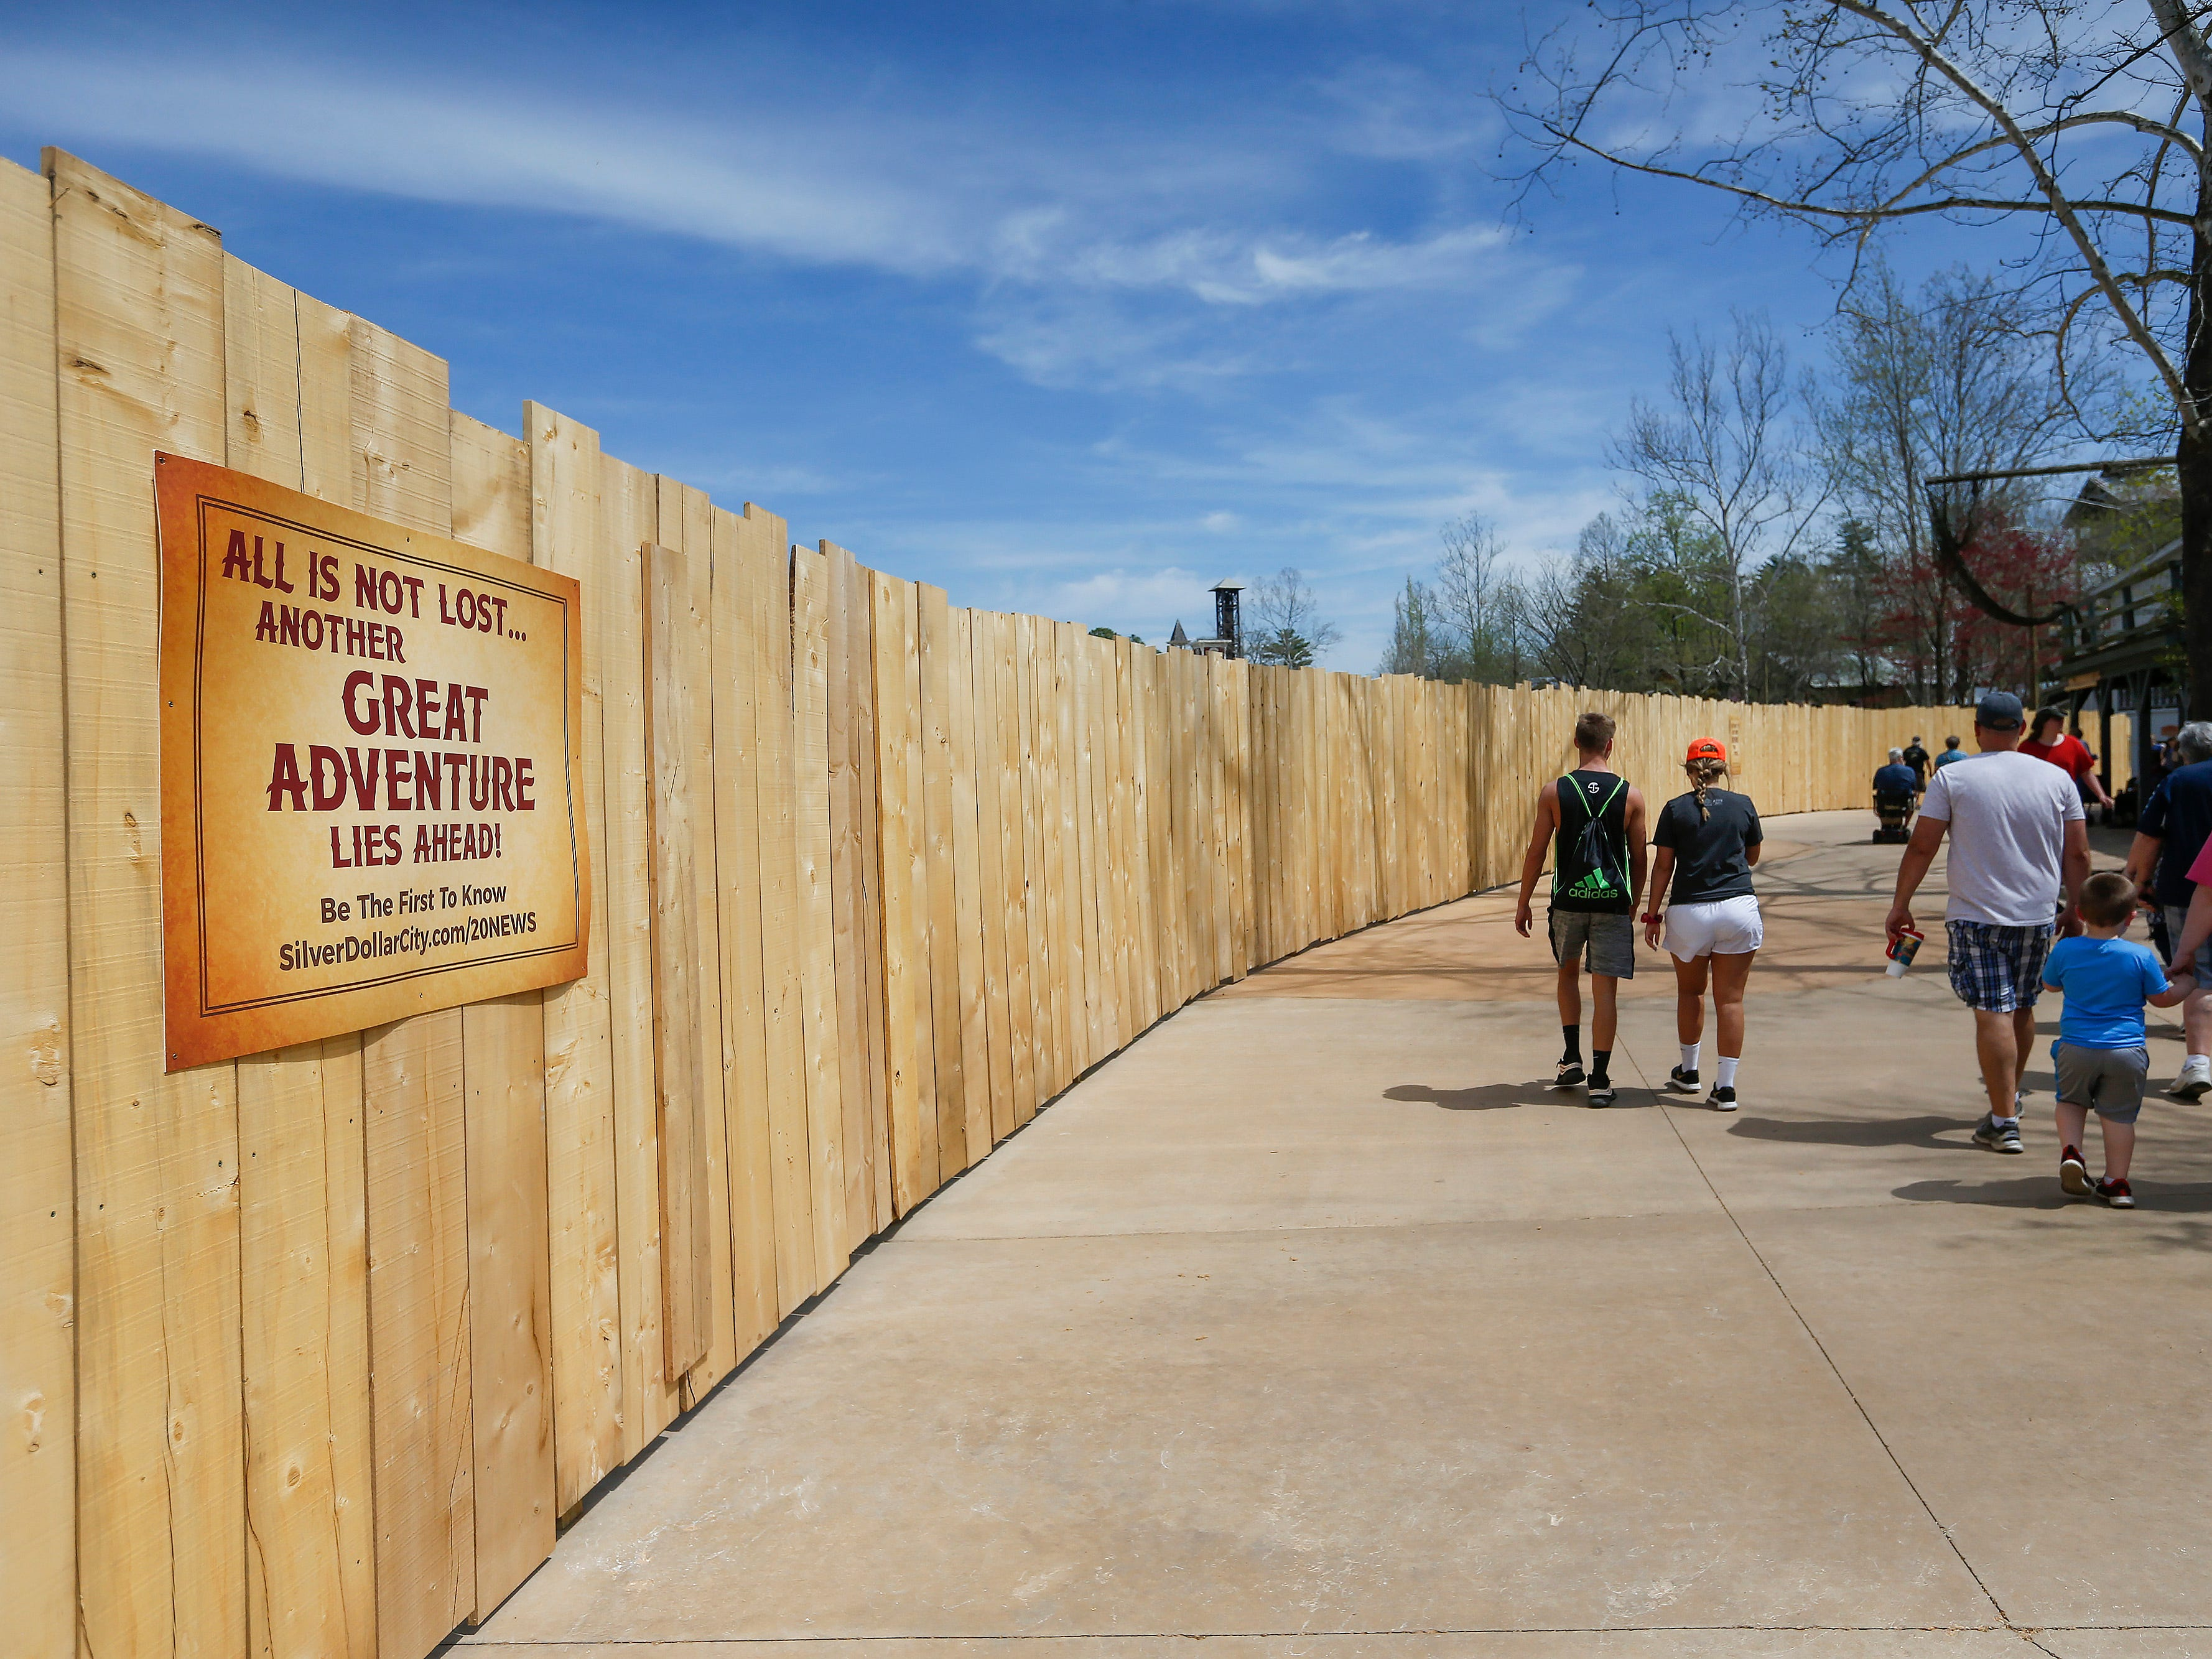 A fence has been put up in front of construction crew who are working on a new attraction at Silver Dollar City on Wednesday, April 10, 2019.